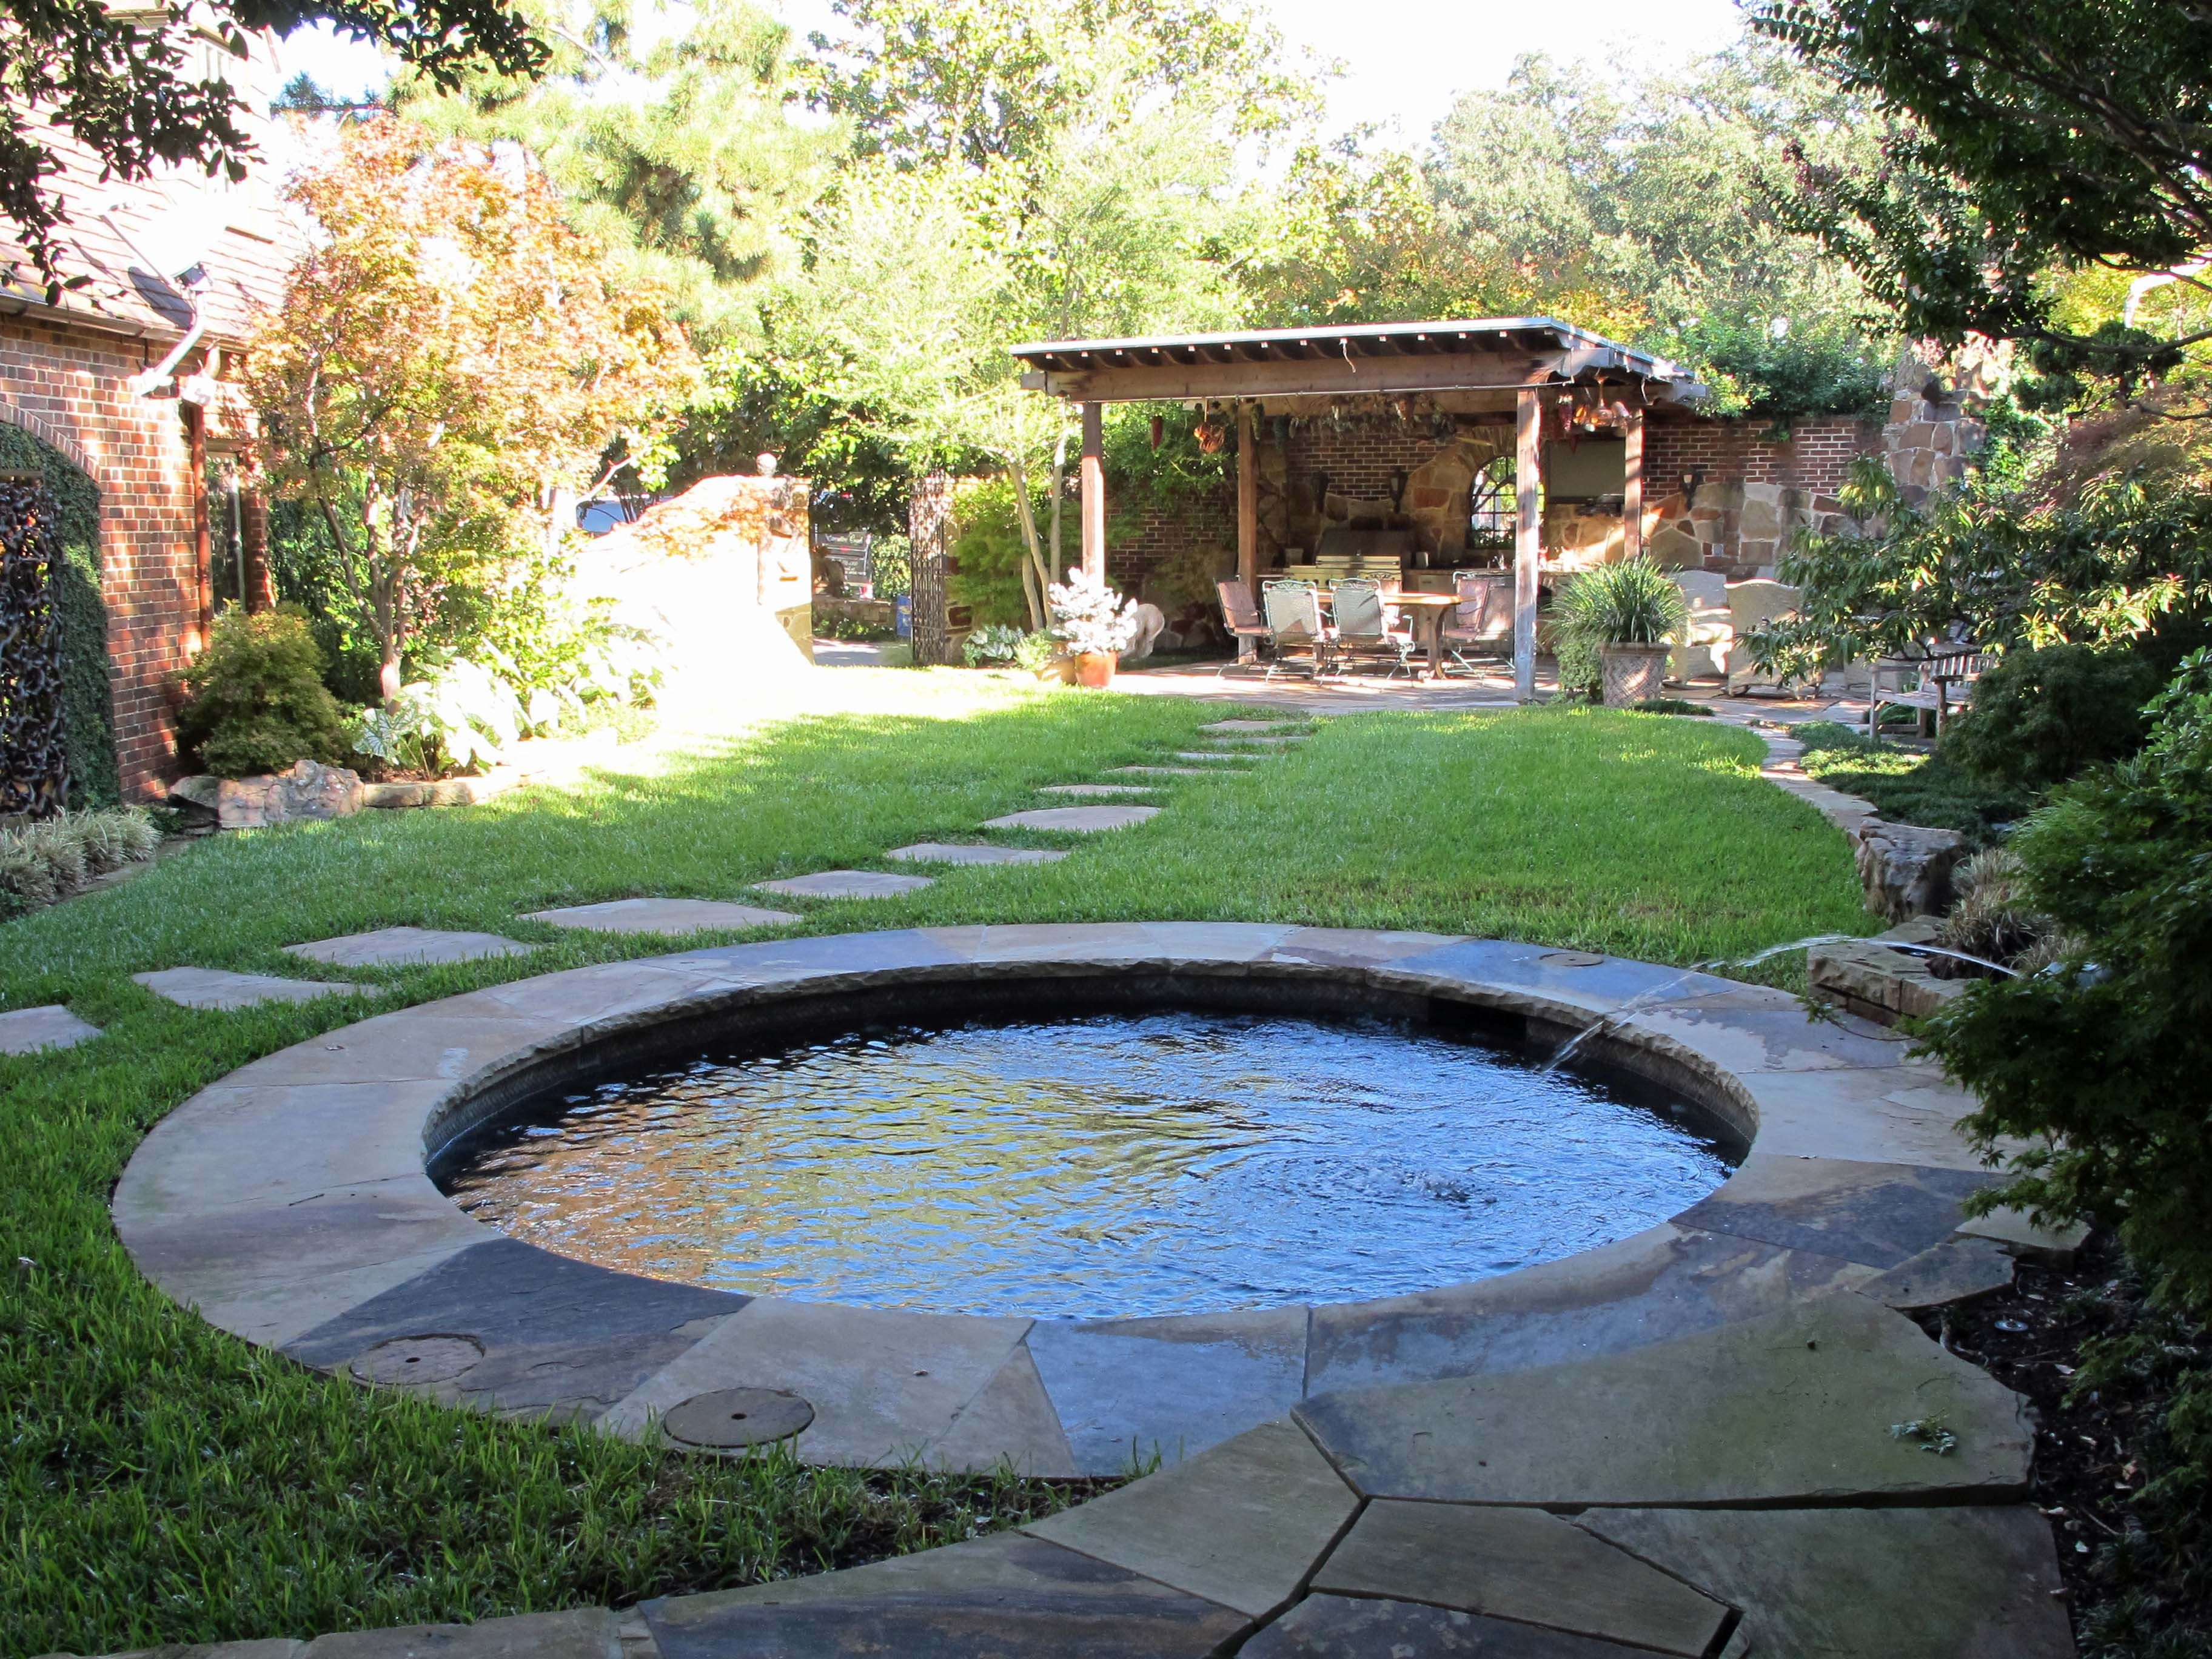 Round Pool And Pergola. Exactly What An Urban Home With Limited Back Yard  Space Needs